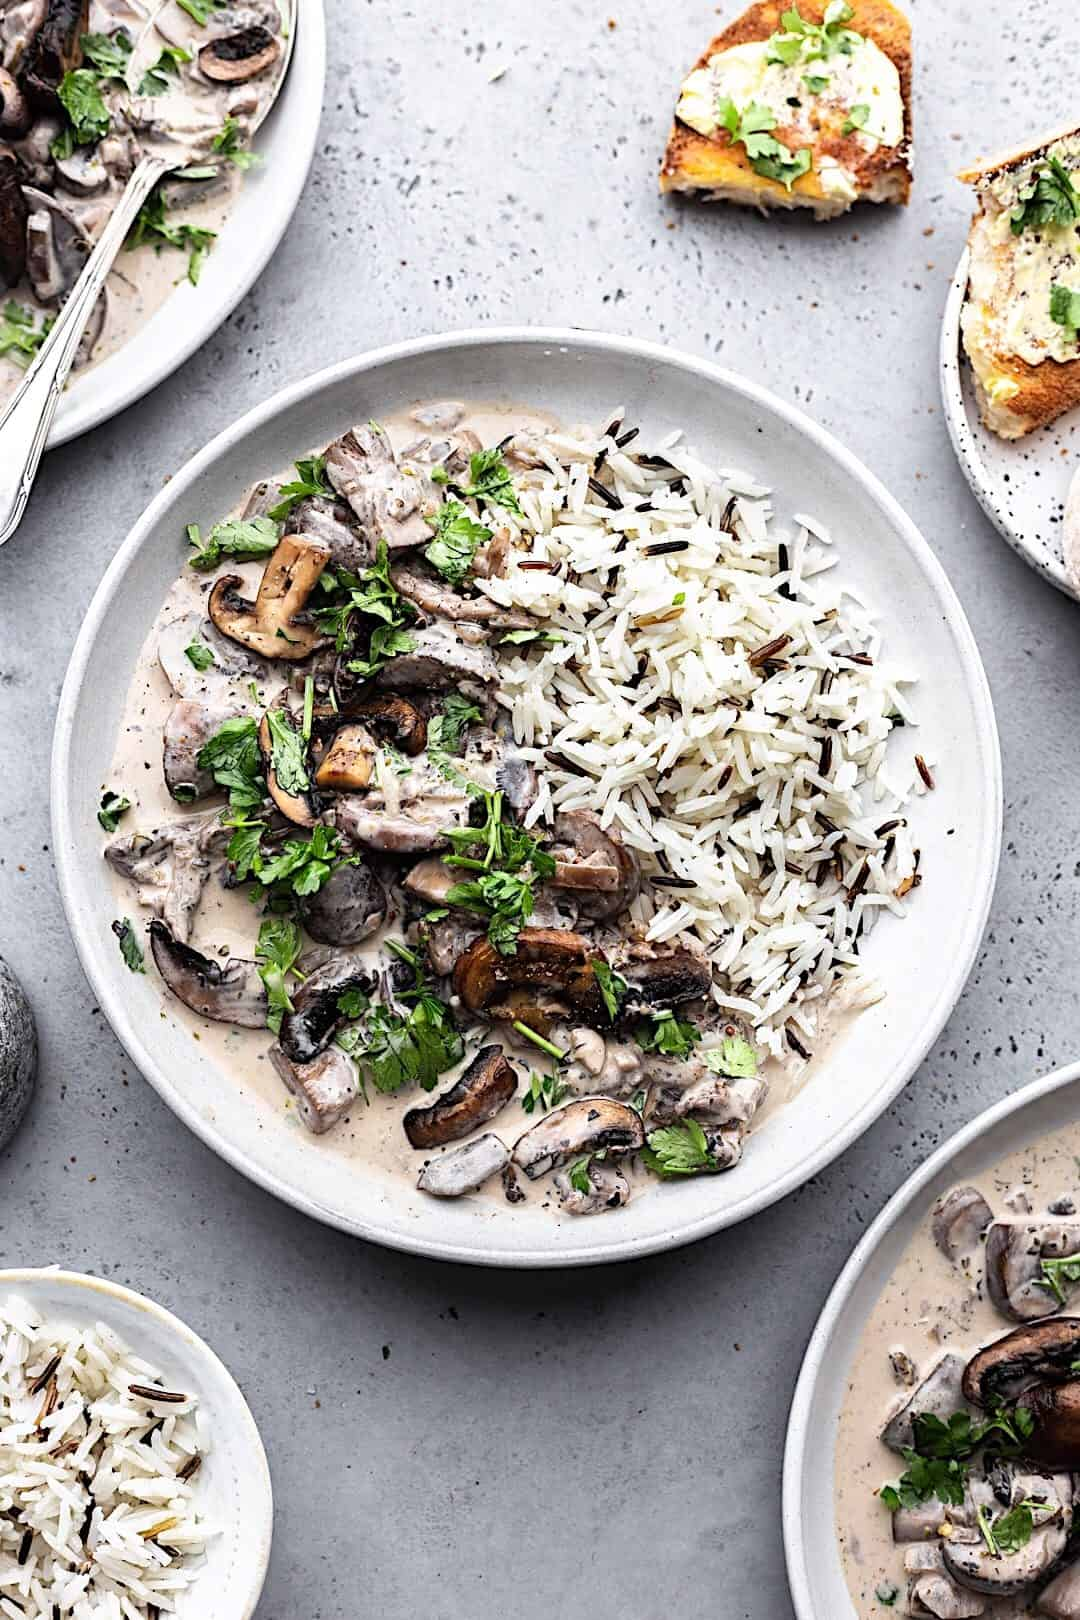 Vegan Mushroom Stroganoff with Wild Rice #vegan #recipe #mushroom #stroganoff #dairyfree #rice #veganrecipe #food